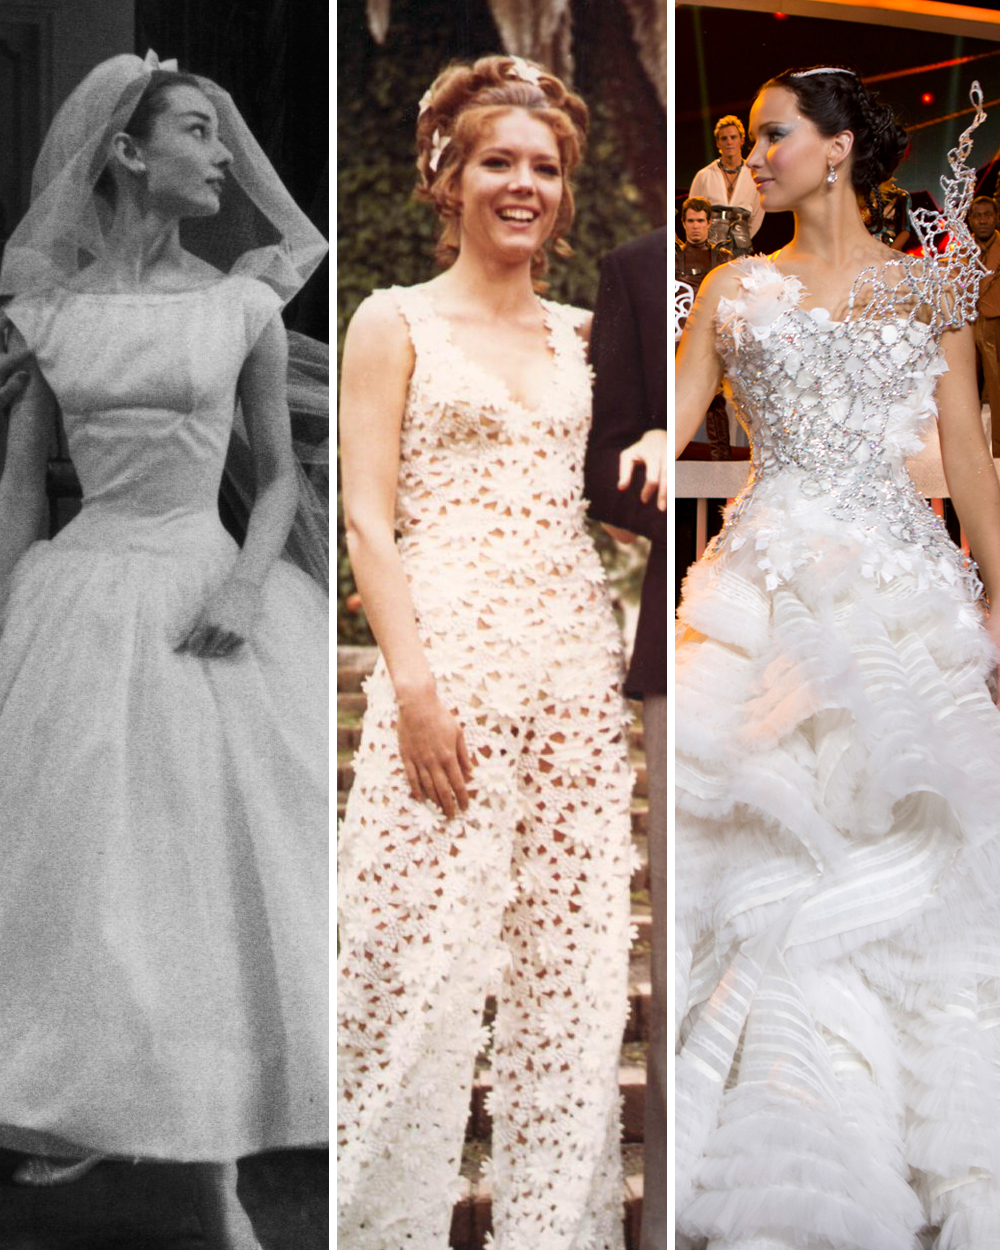 Most Popular Bridesmaid Dress: The Most Iconic Movie Wedding Dresses Of All Time